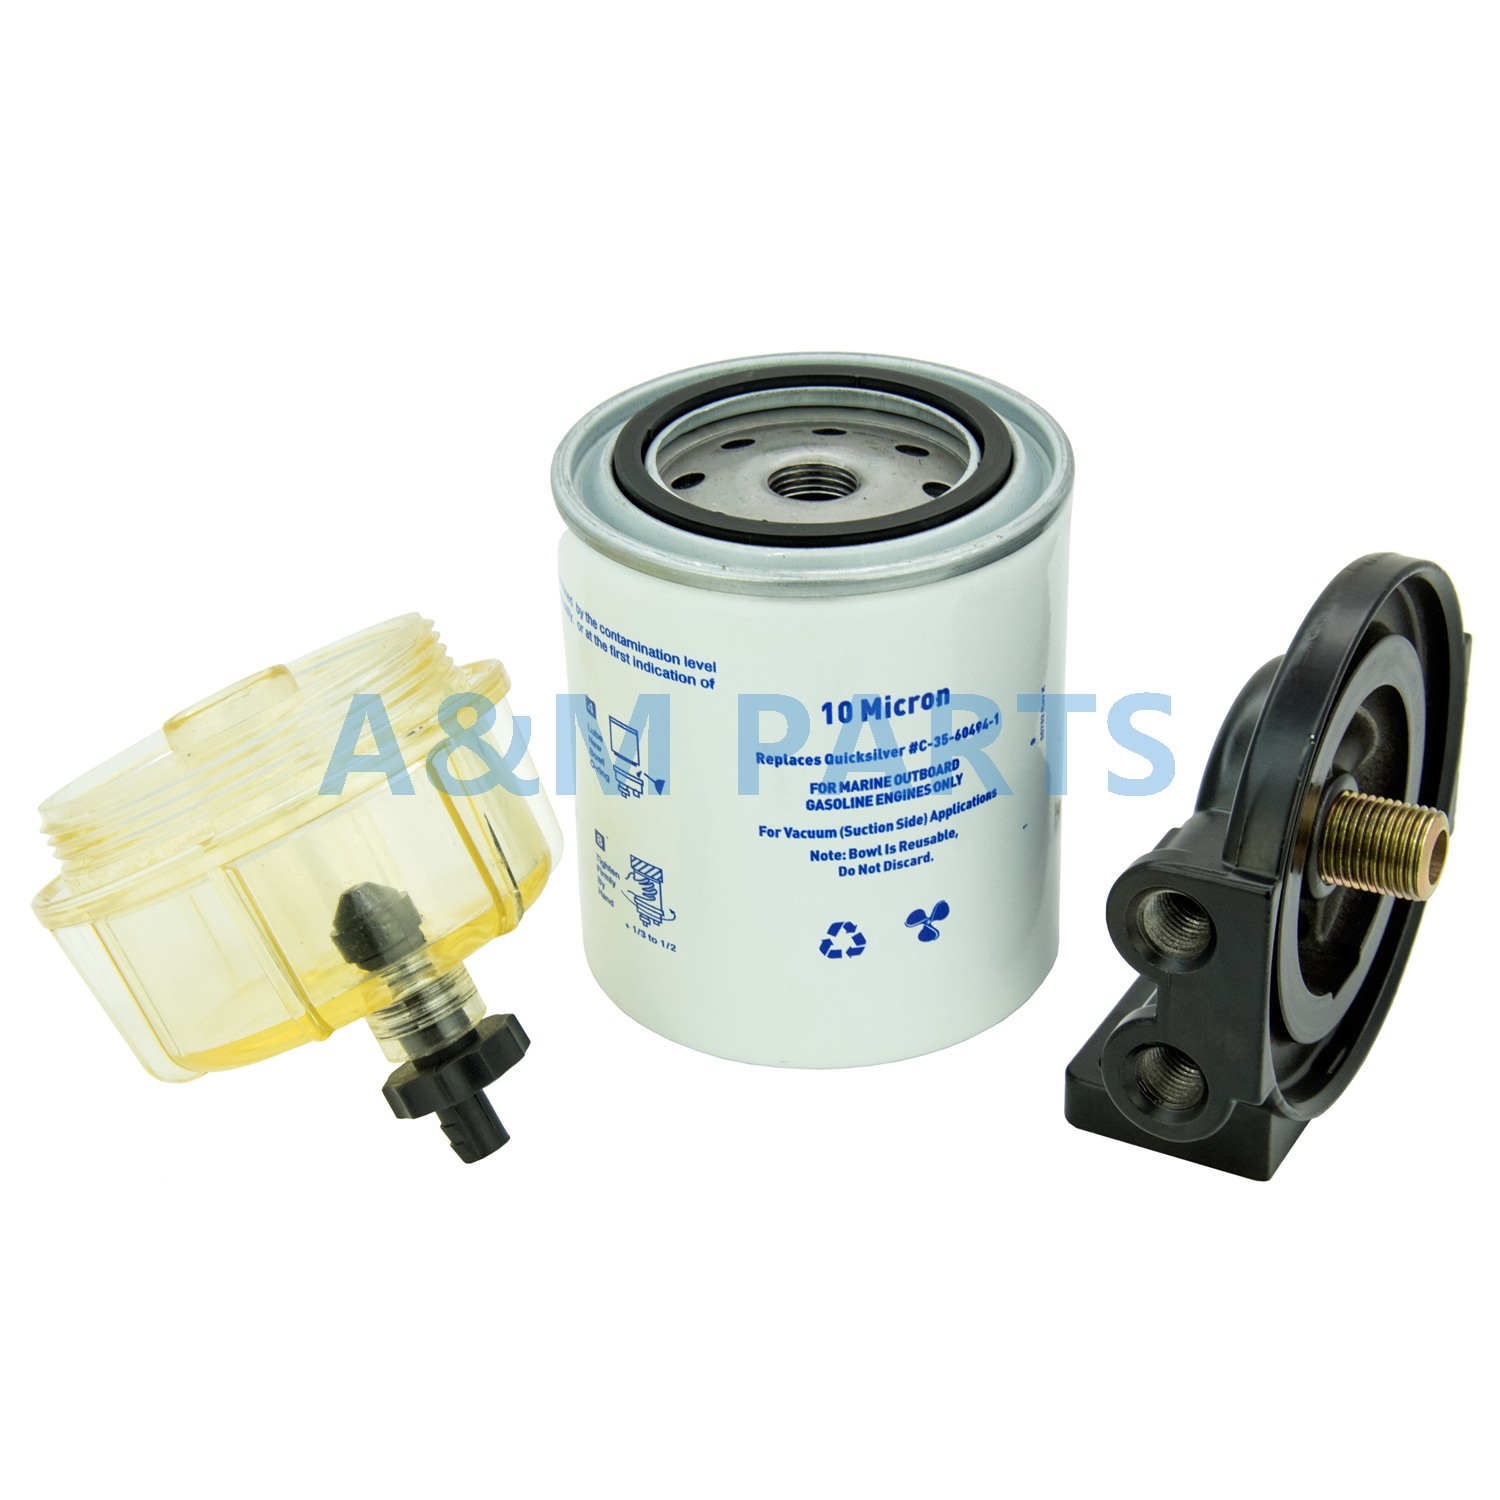 boat fuel filter marine engine fuel water separator for mercury yamaha outboard 10 micron in fuel filters from automobiles motorcycles on aliexpress com  [ 1500 x 1500 Pixel ]